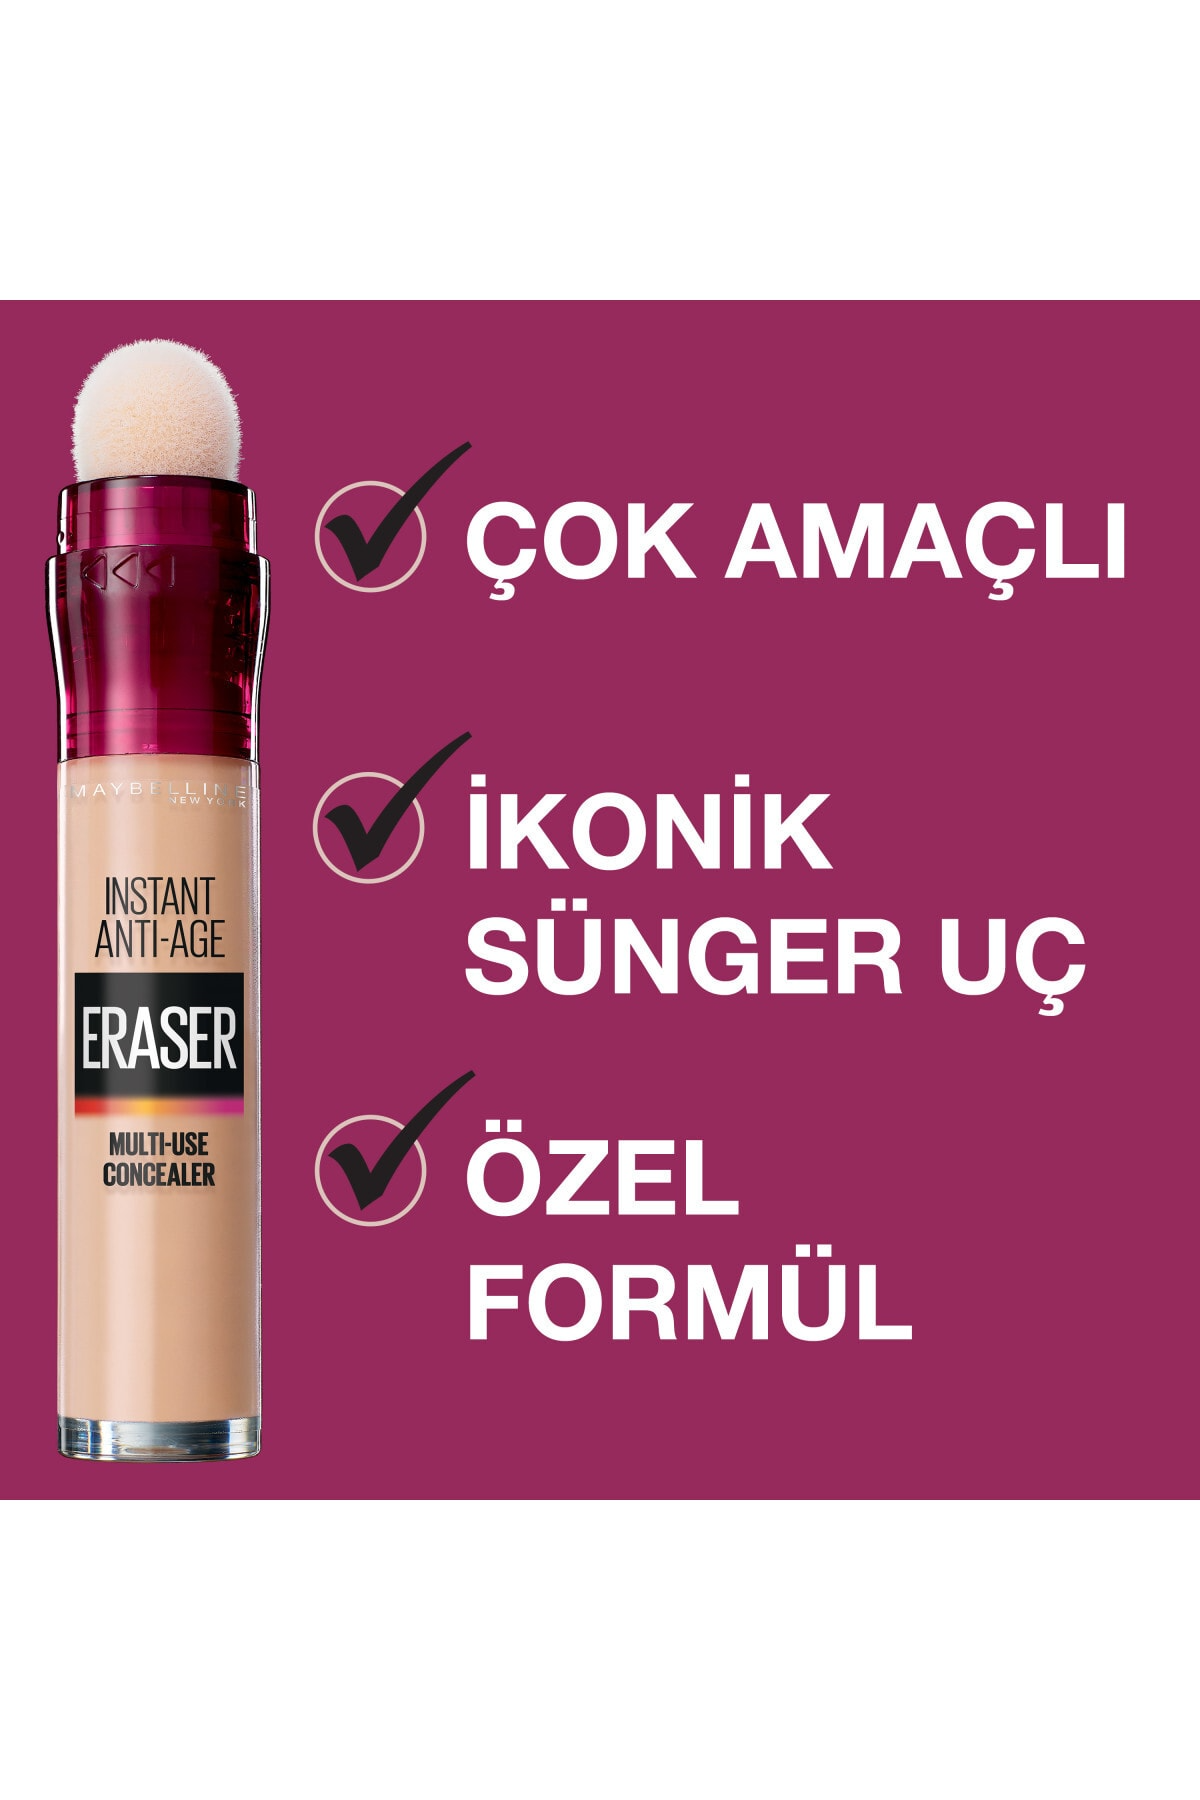 Maybelline New York Instant Anti Age Eraser Kapatıcı-02 Nude 6,8 ml